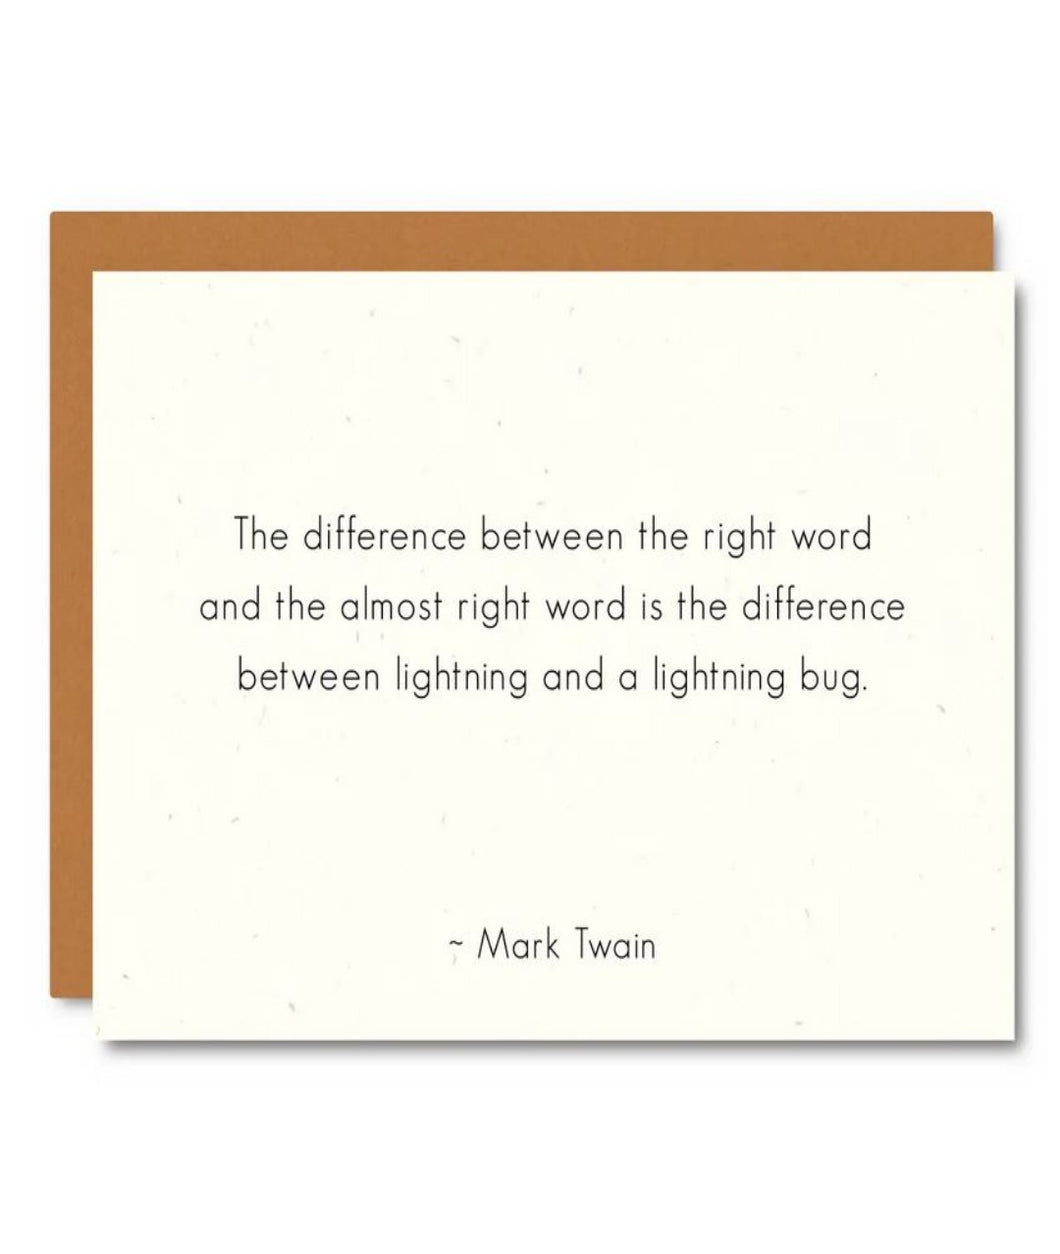 Pictured against a white background is a white card with texting quoting author Mark twain. The text states,